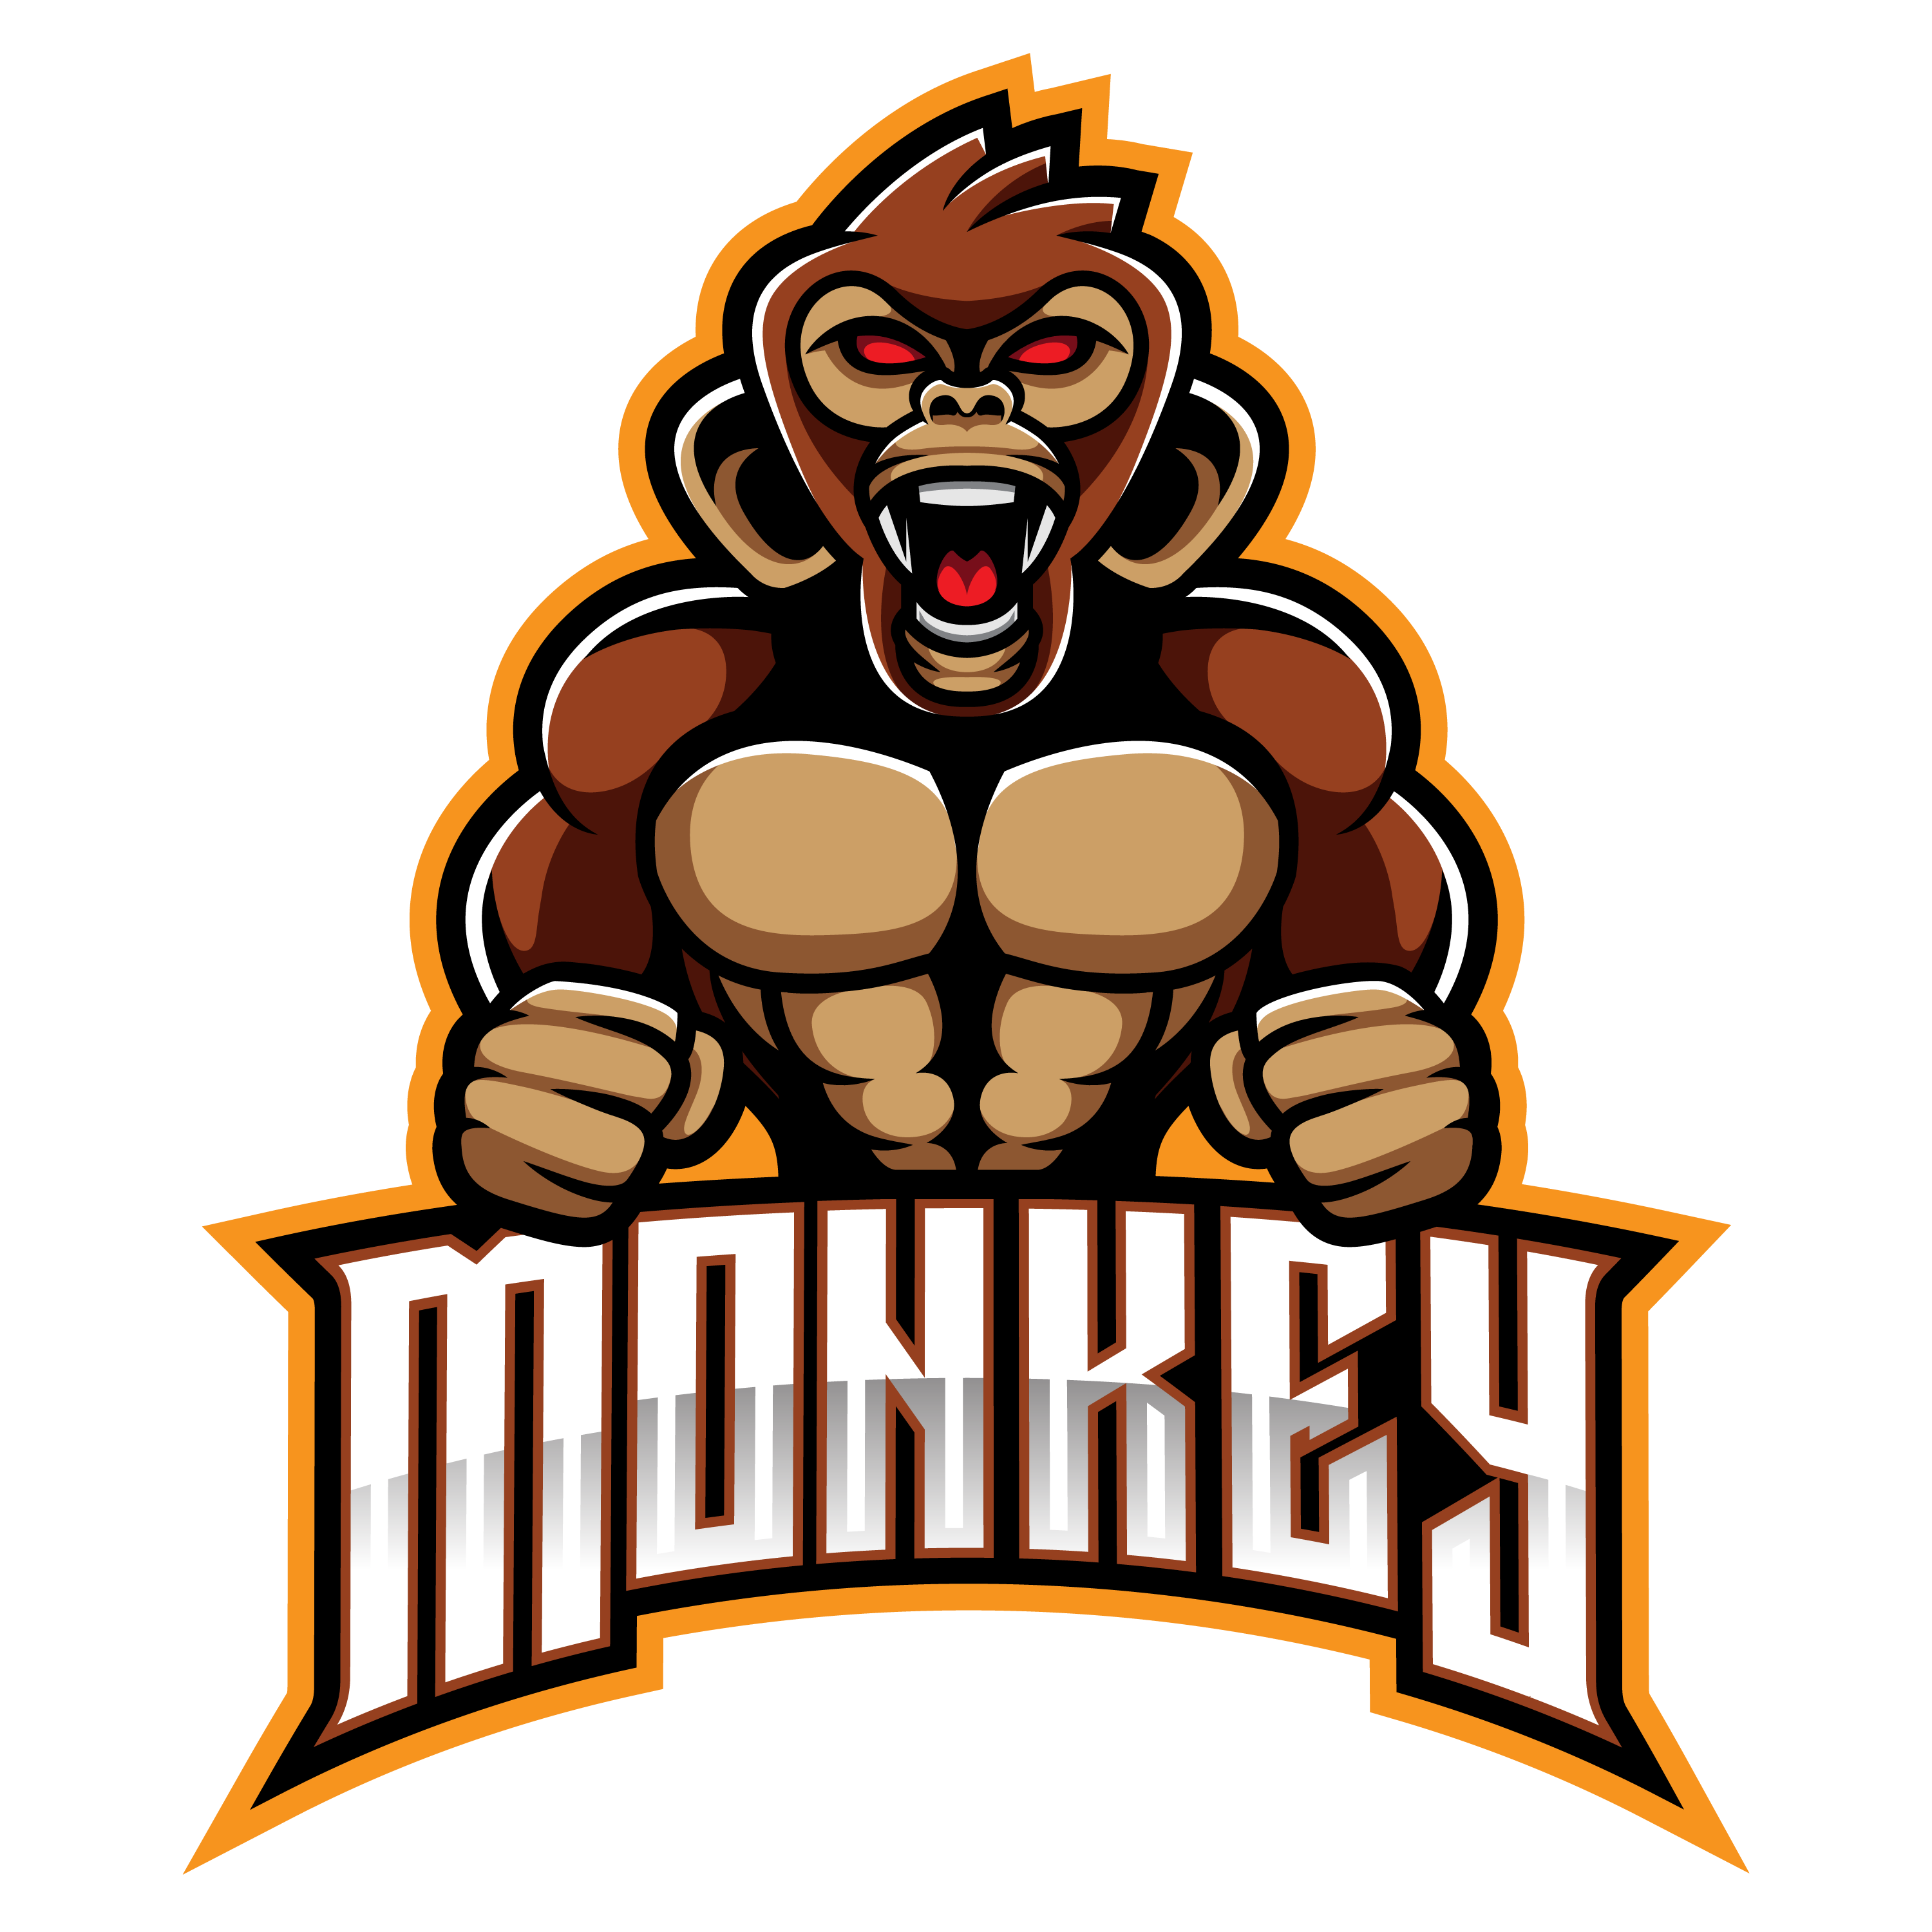 Monkey-Esports-Logo-Design-PNG-Transparent